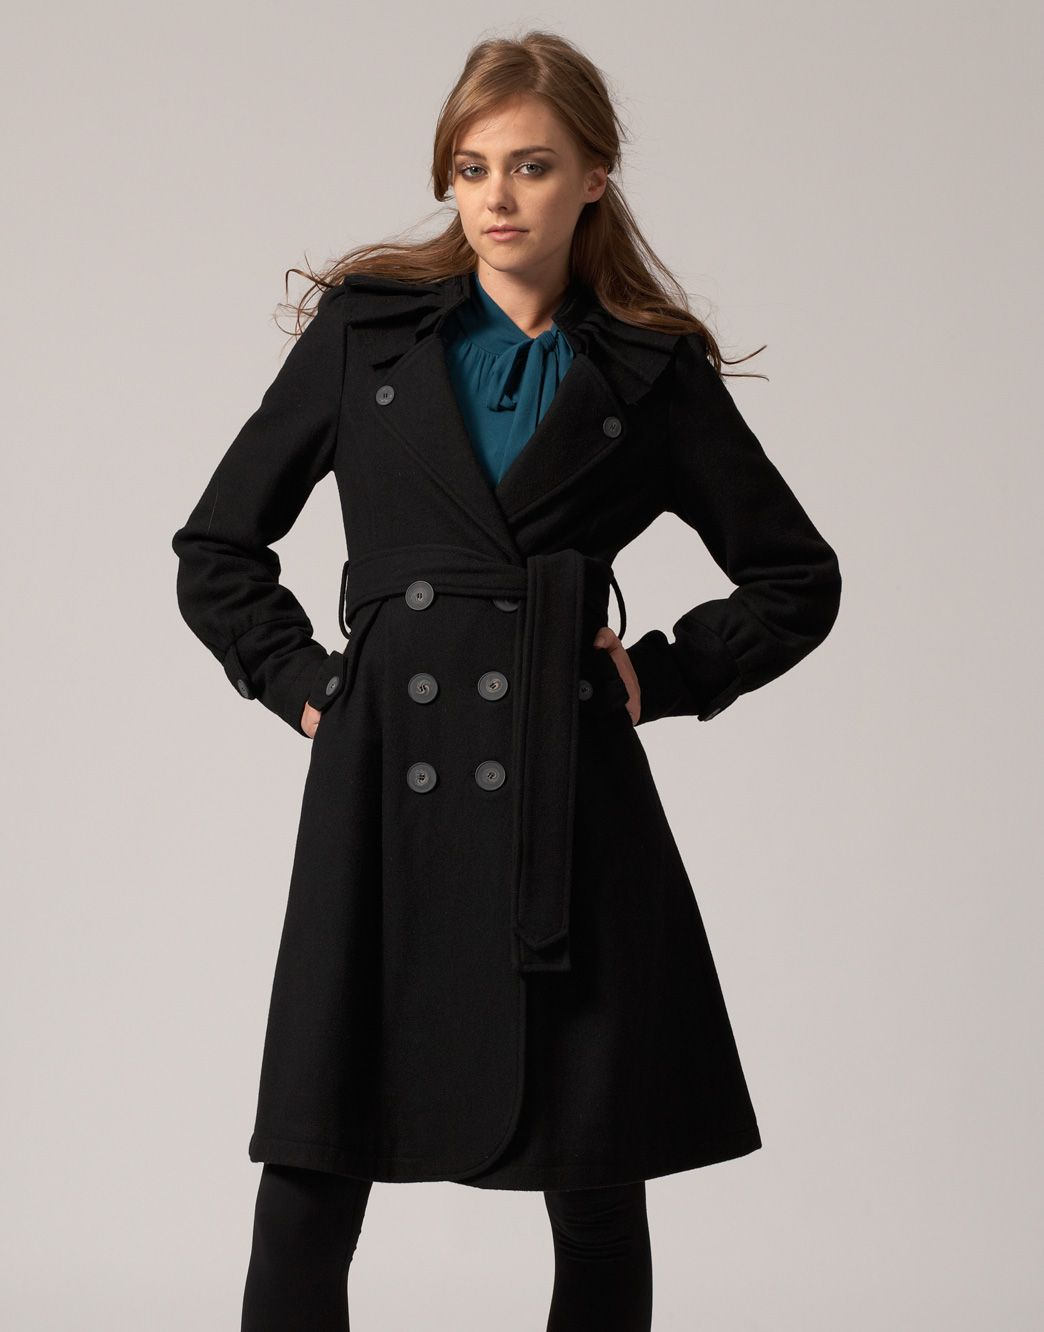 Ladies Winter Coats | Latest Stylish Coats for Cool Weather ...